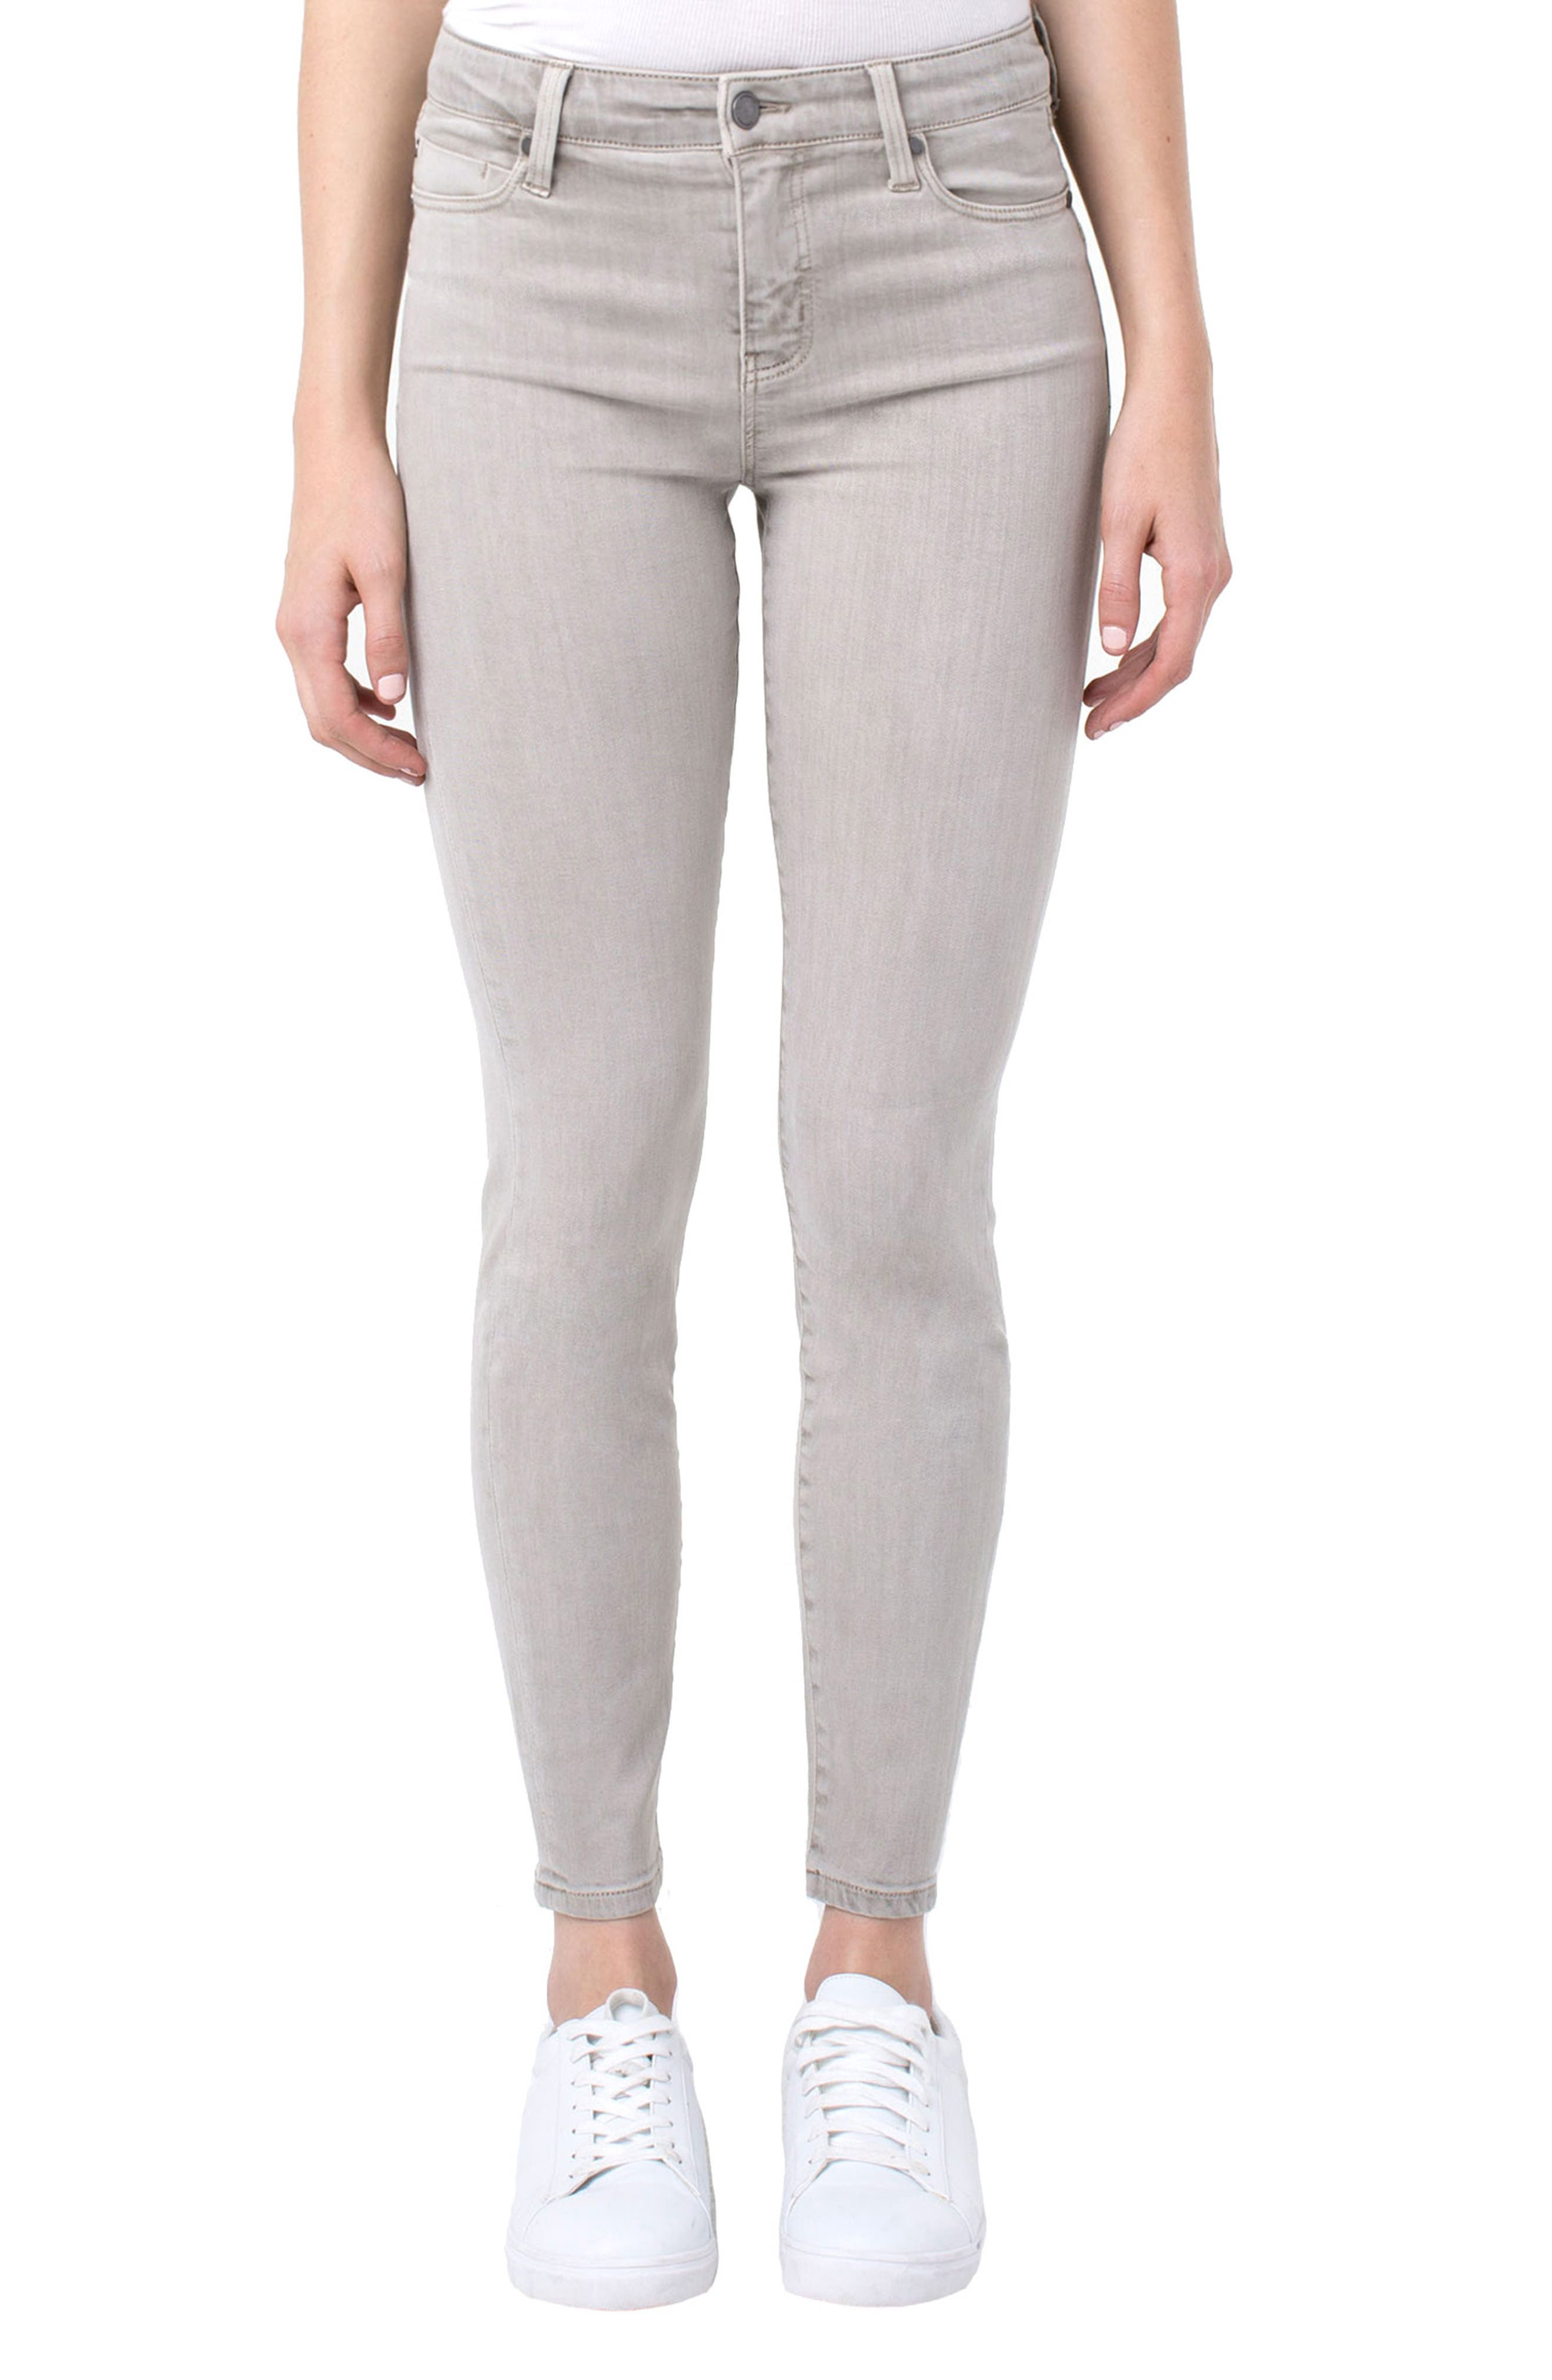 LIVERPOOL Piper Ankle Skinny Jeans In Oyster